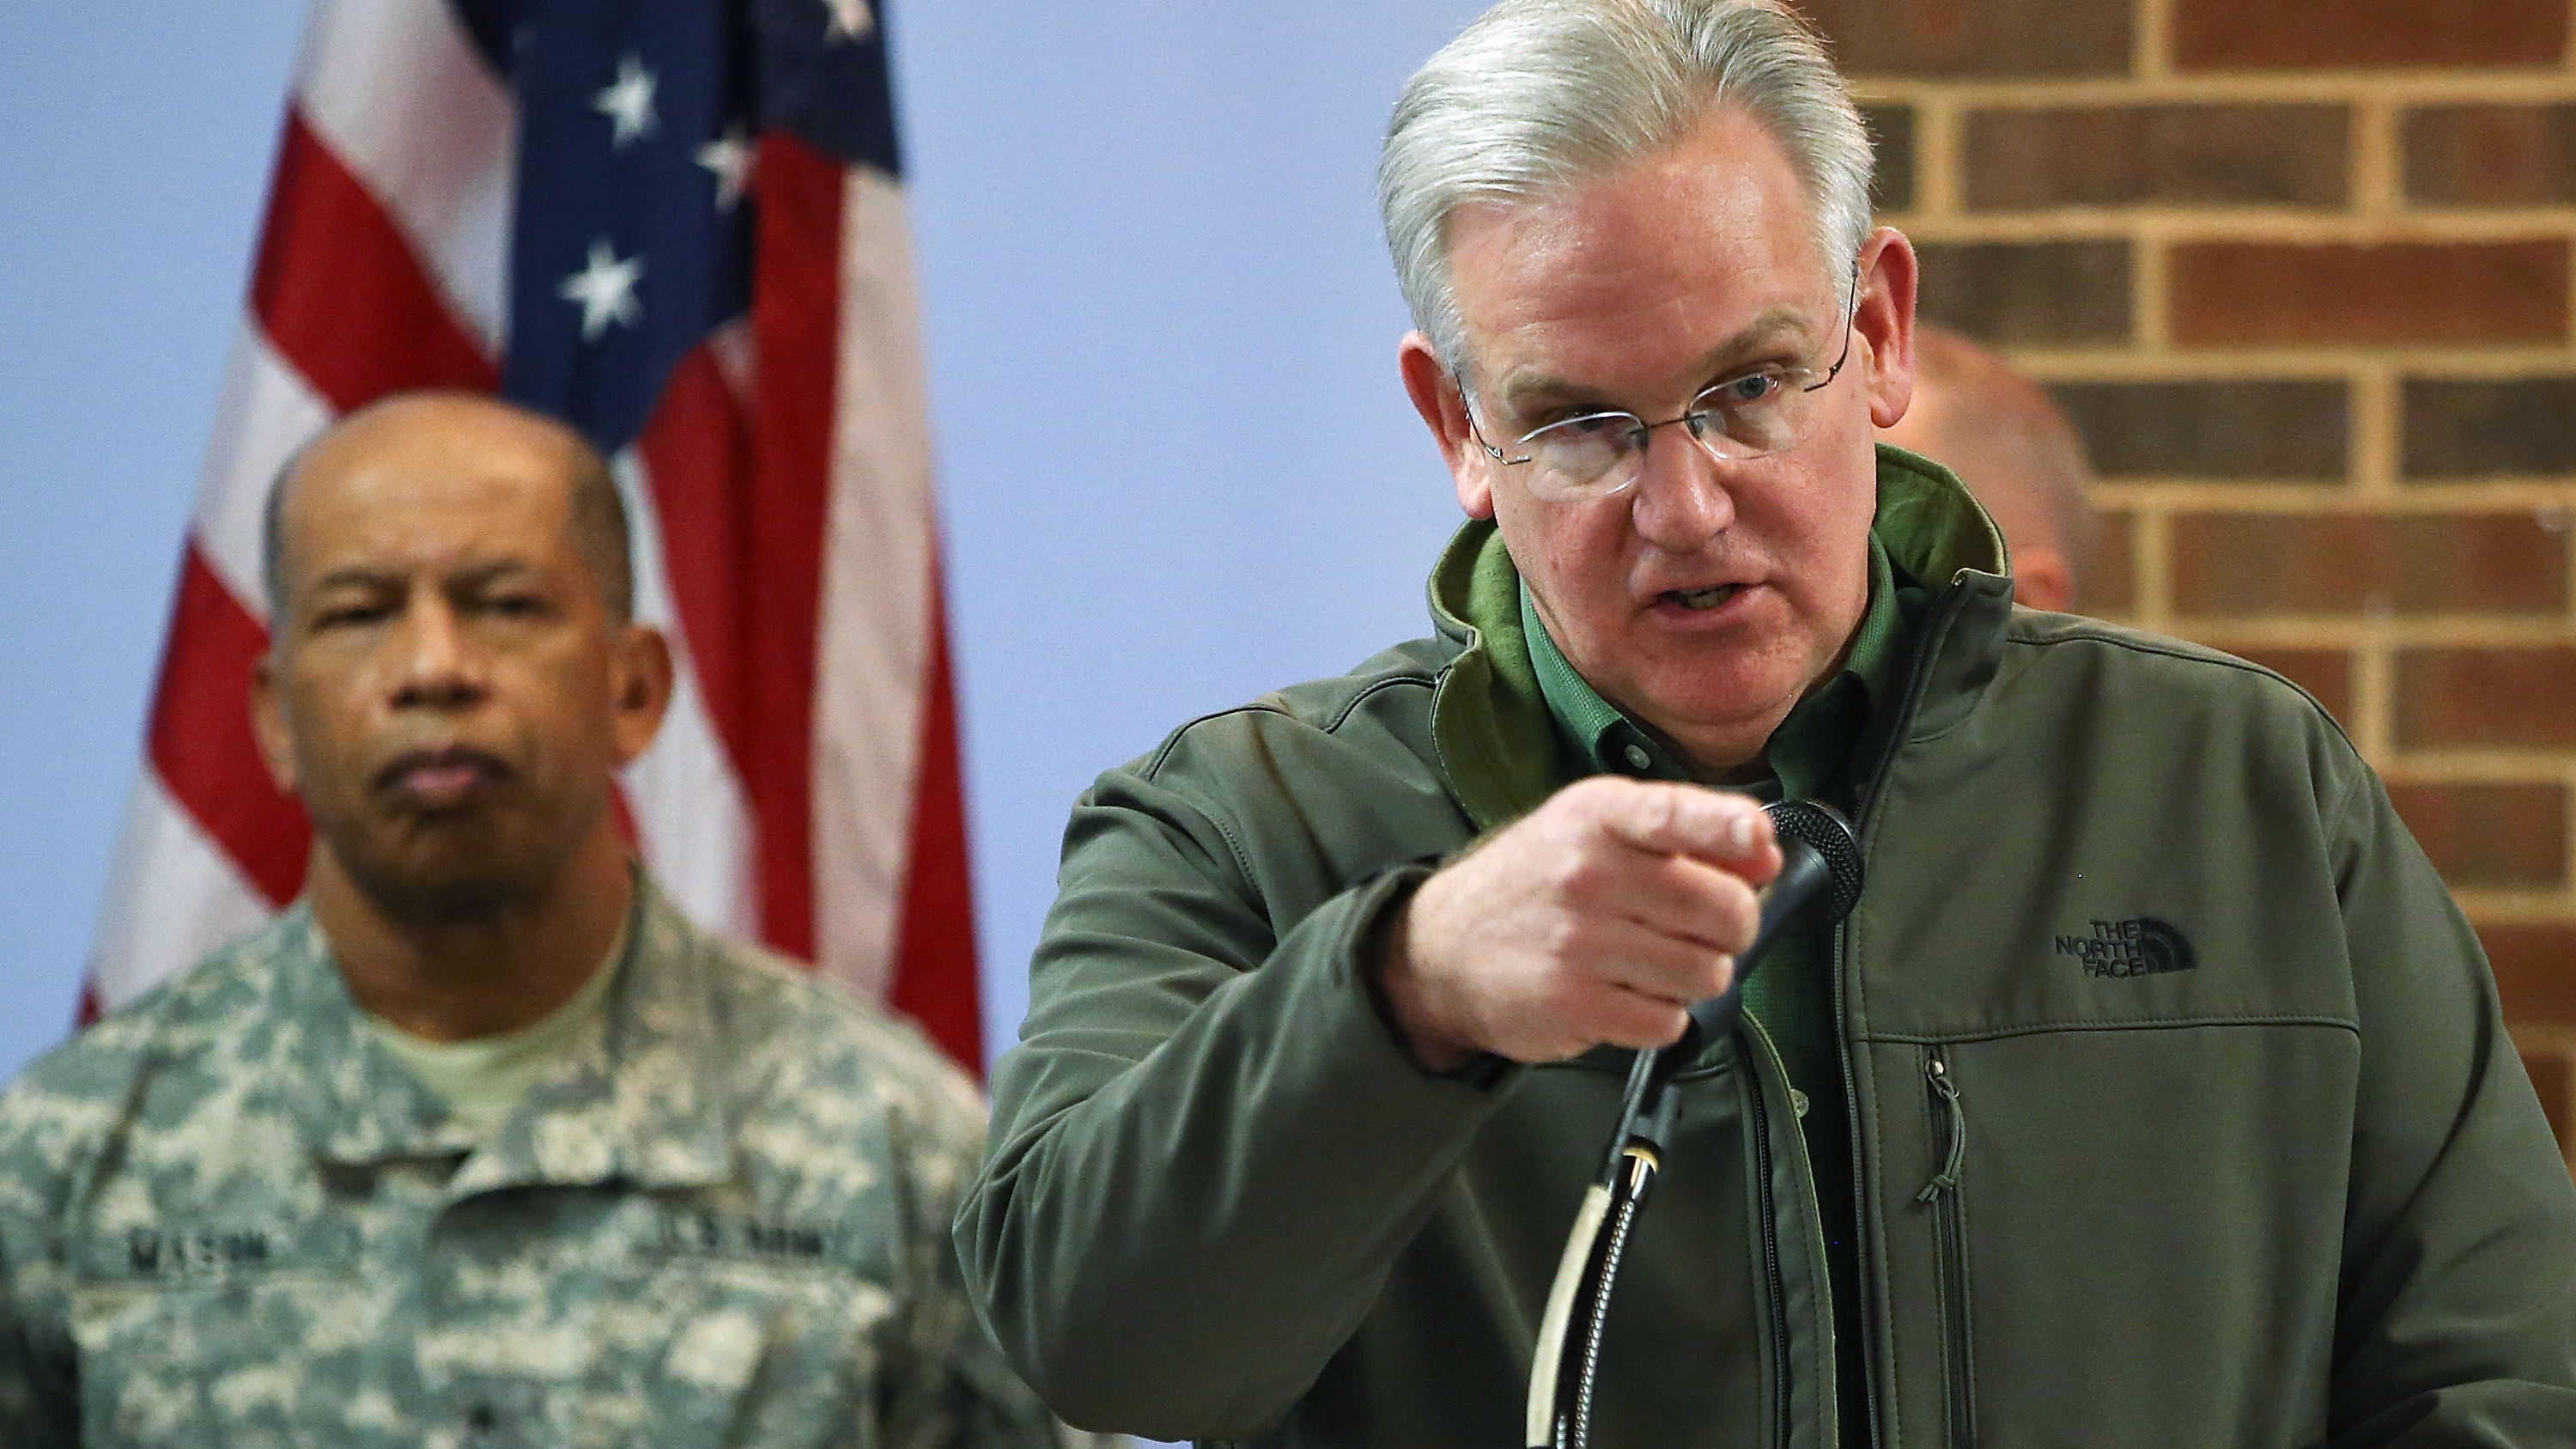 """Missouri Gov. Jay Nixon said that parts of Ferguson were """"a heartbreaking sight"""" Tuesday, with residents afraid to go outside."""